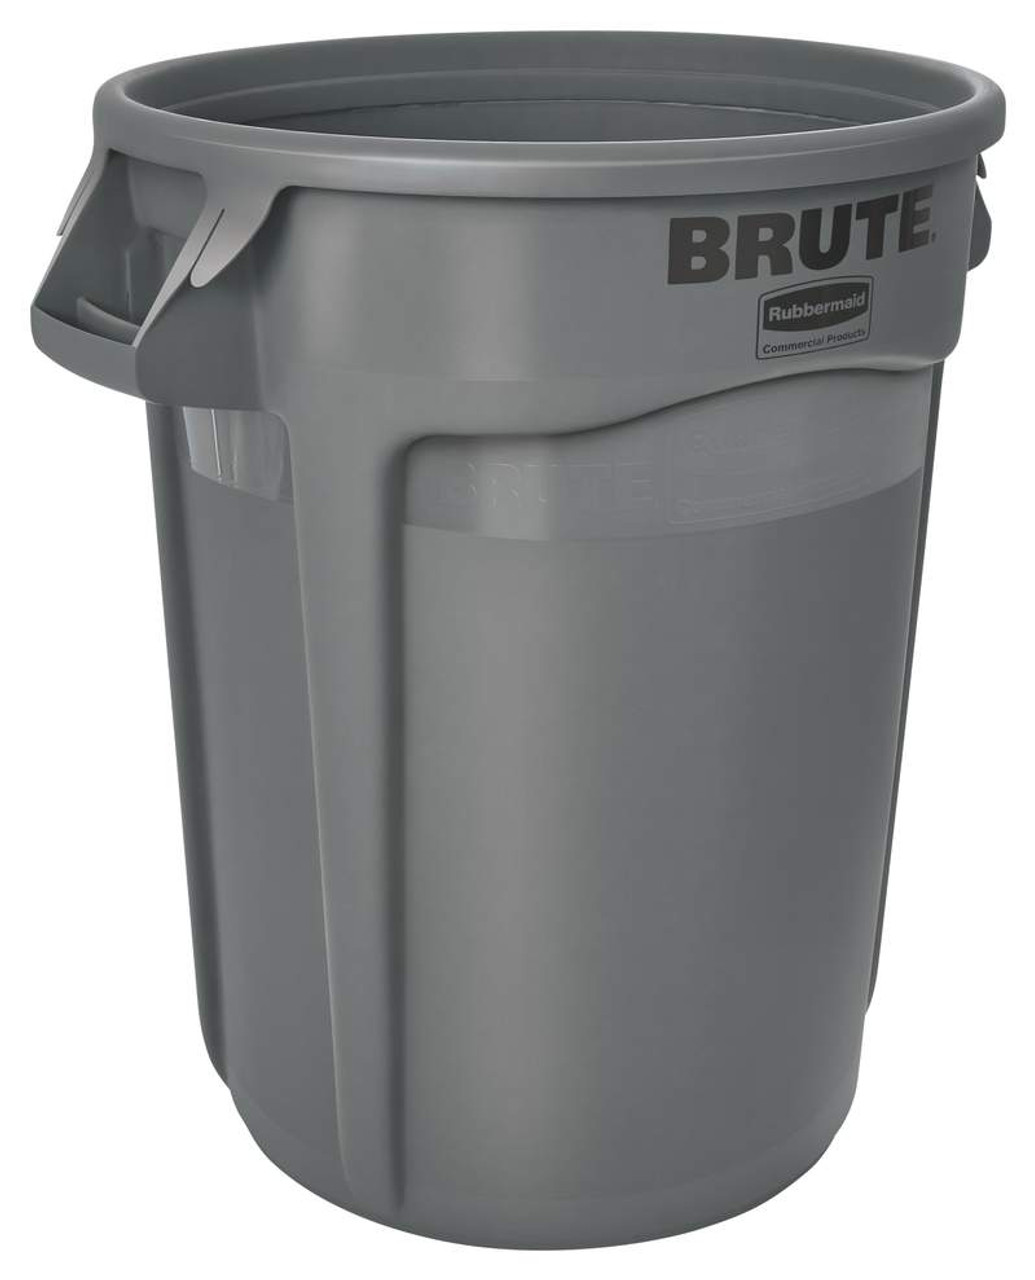 Rubbermaid Brute Container 121.1 L - Grey - FG263200GRAY